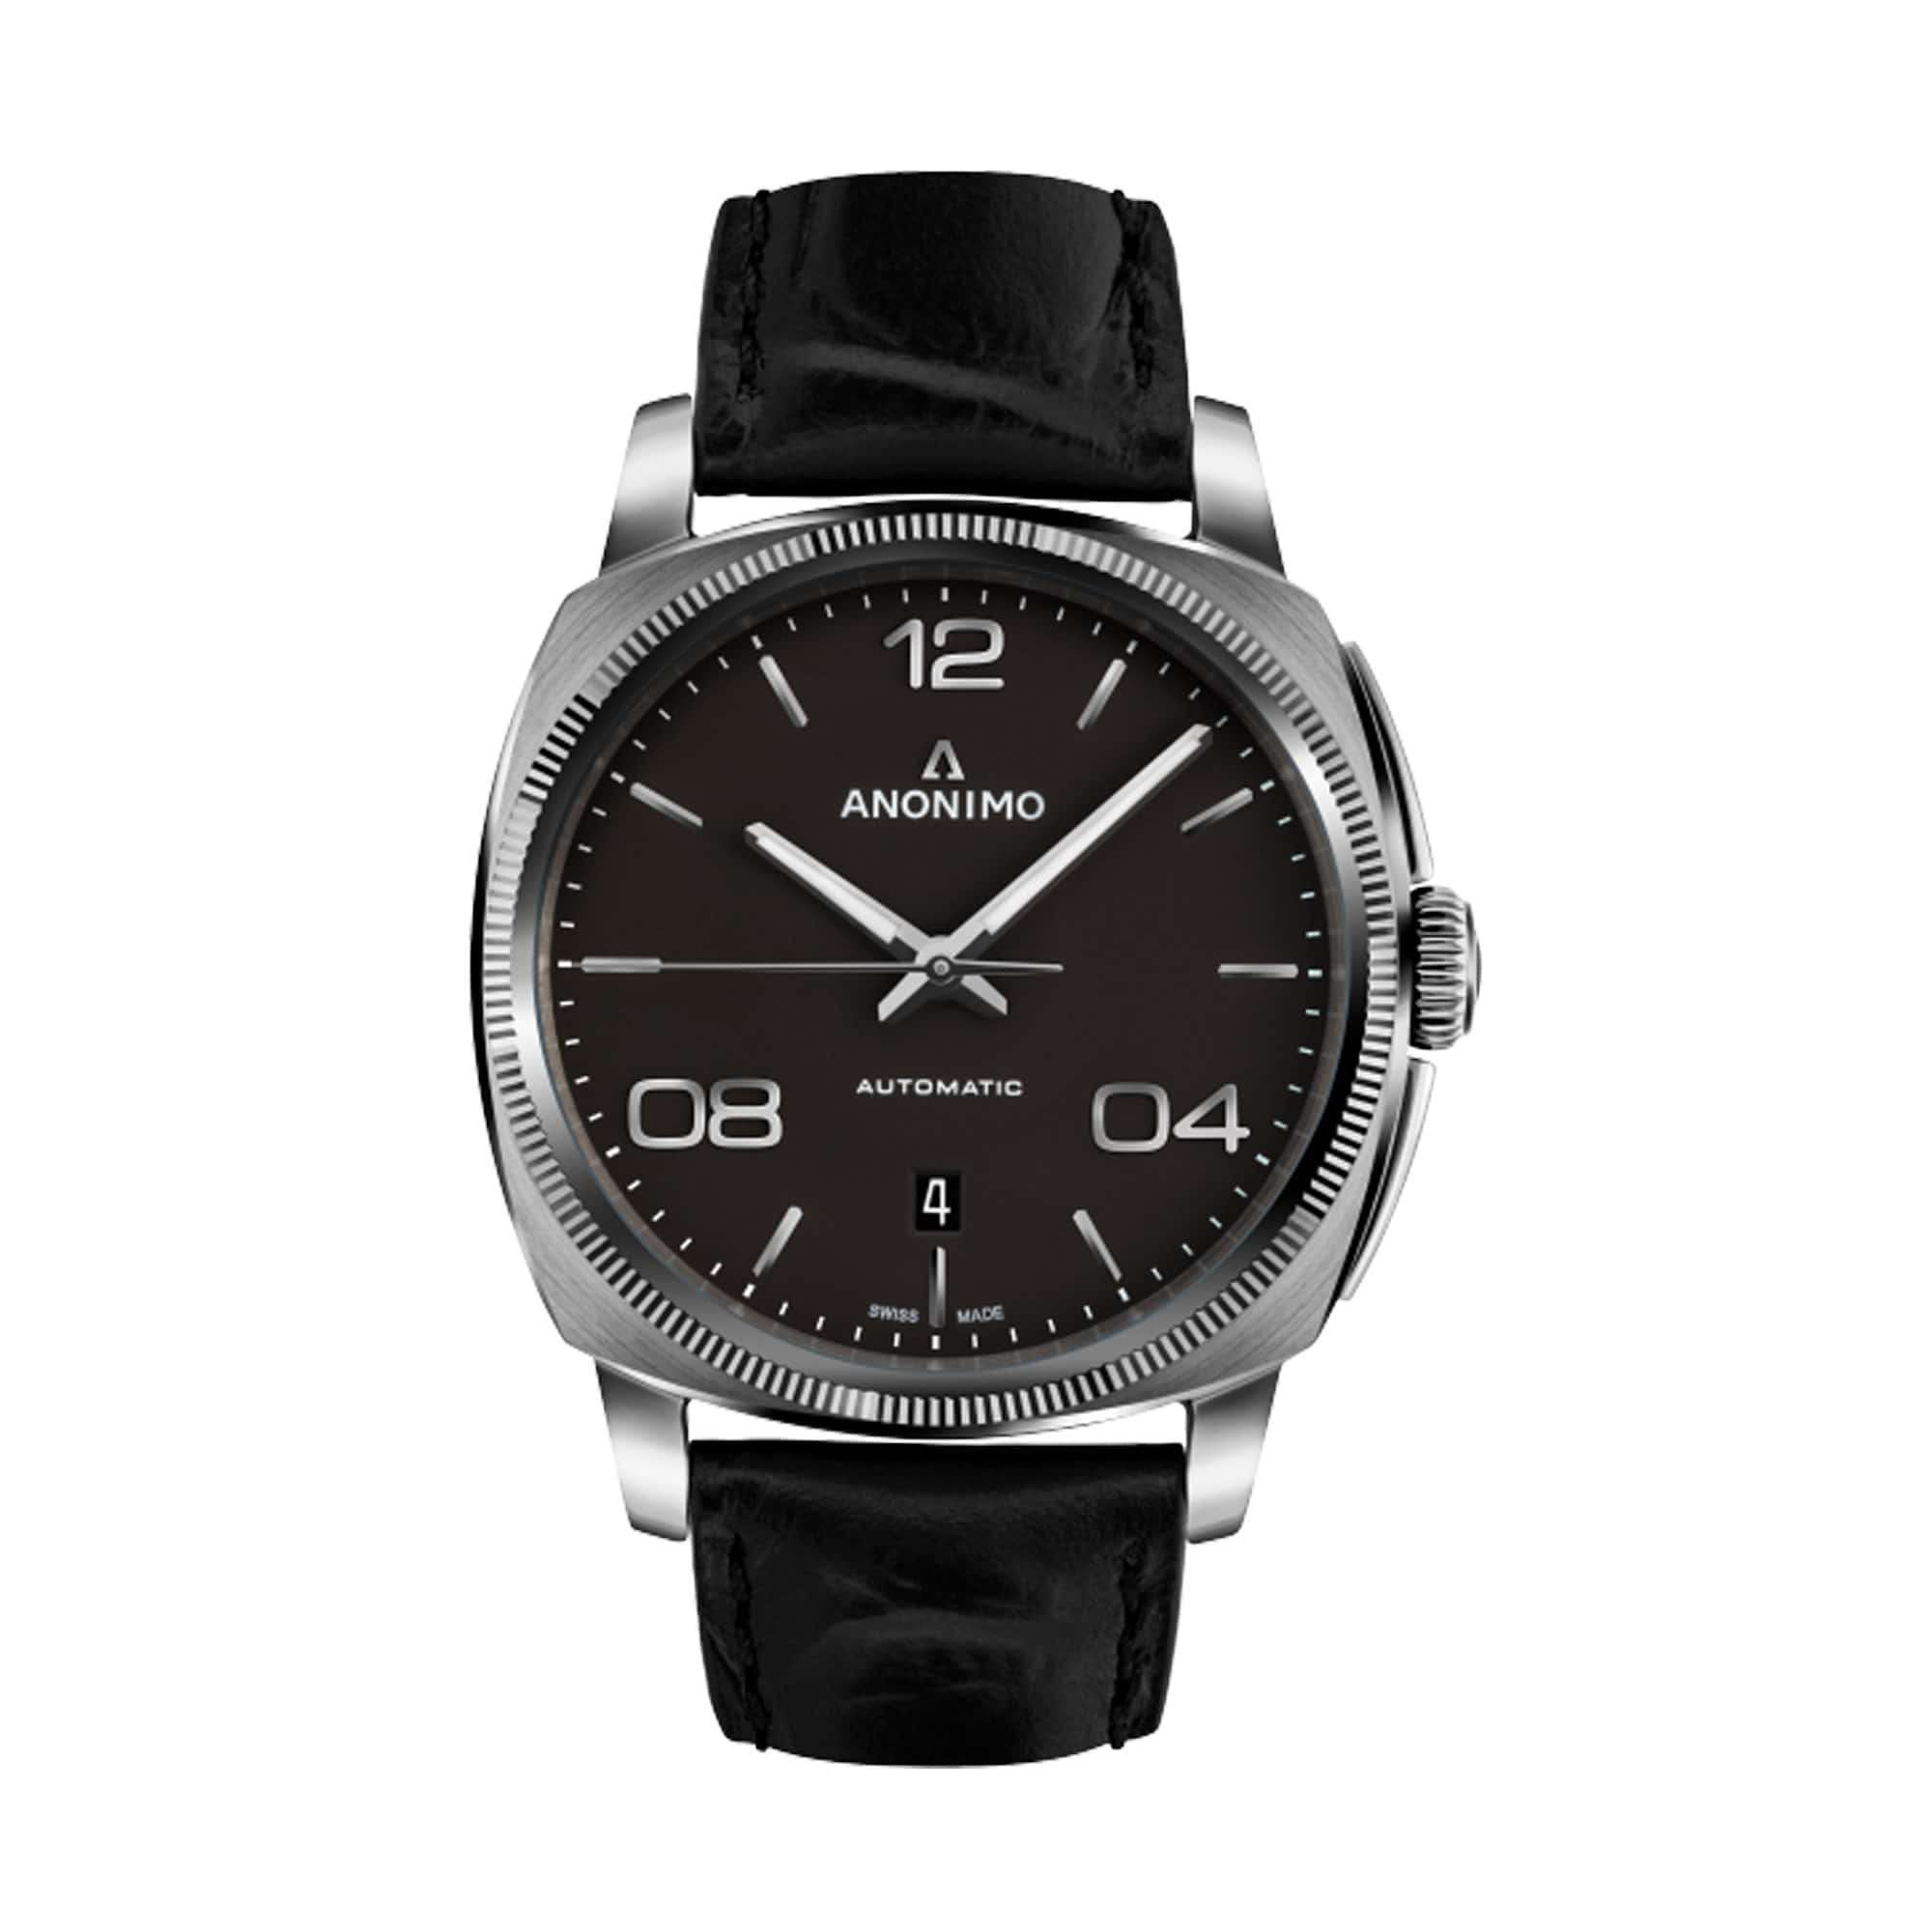 Anonimo Epurato Automatic Stainless Steel AM-4000.01.101.W11 – Swiss Time